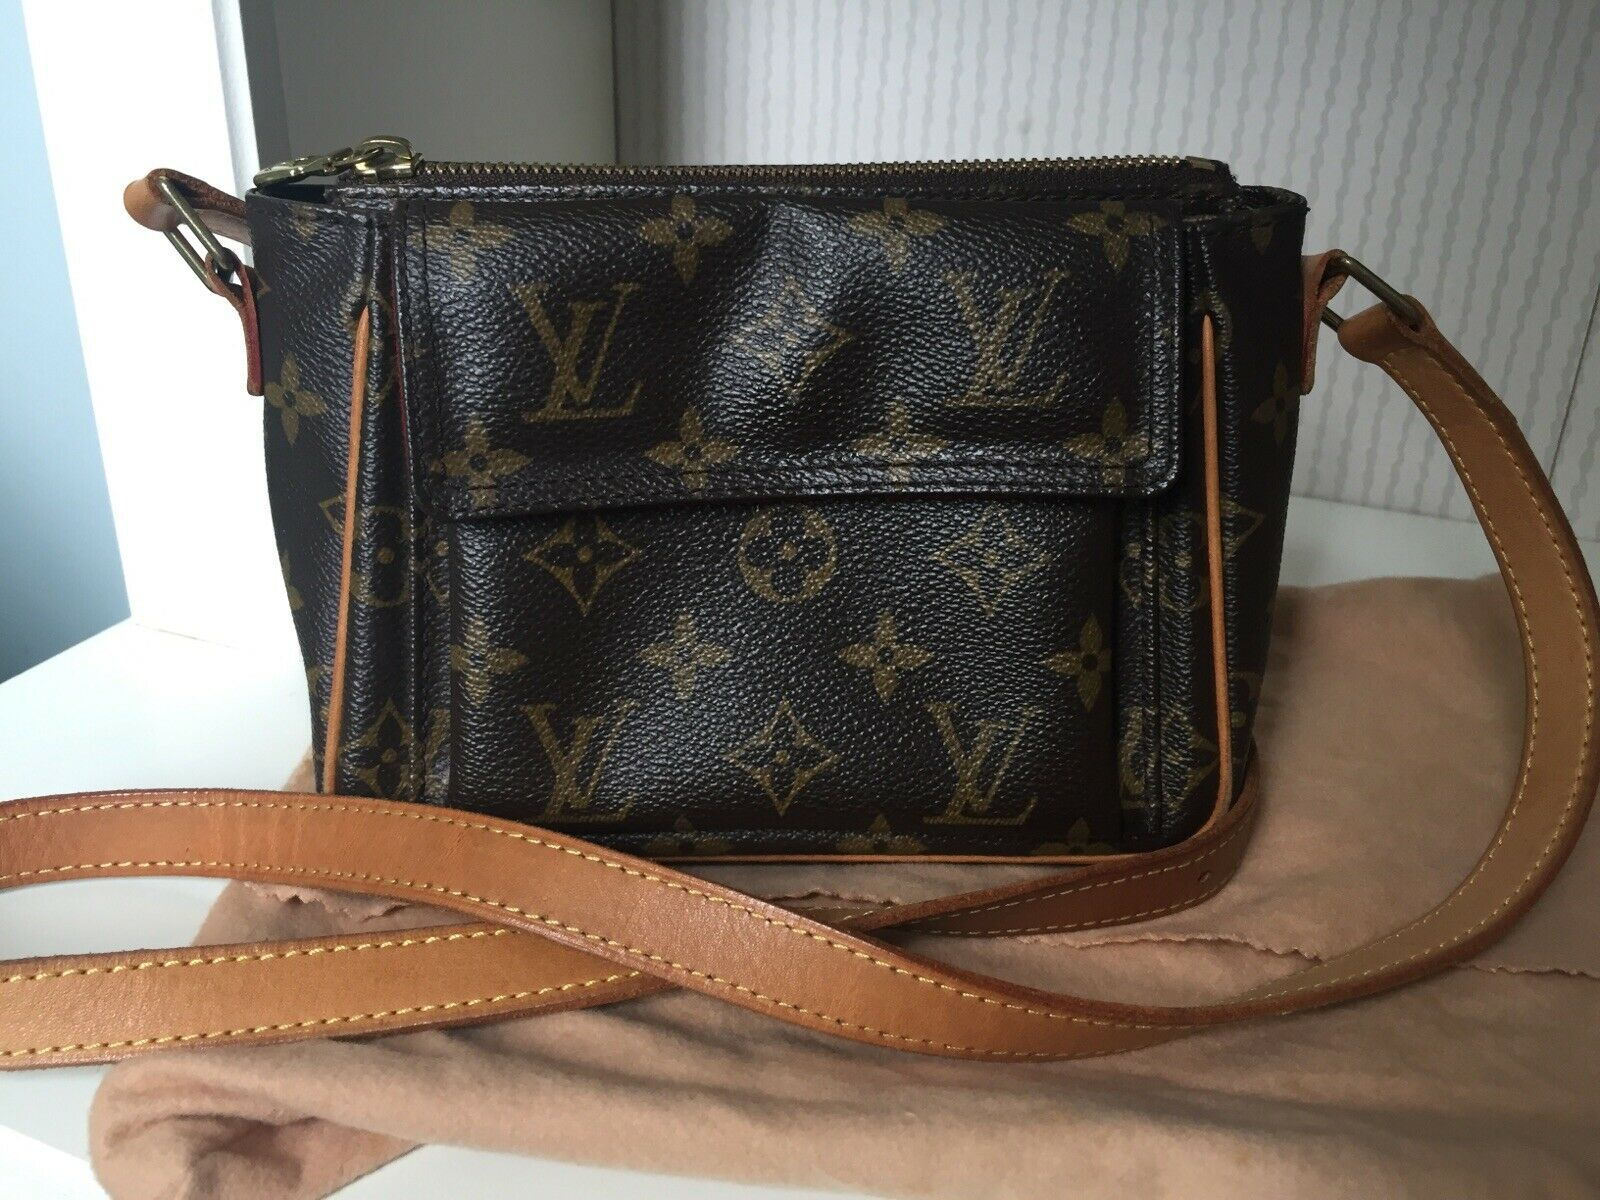 Authentic Louis Vuitton Monogram Viva Cite PM Schultertasche - 715.08,Kaufpreis 715,08,datum 01.07.2020 22:12:38,Website quoka.de